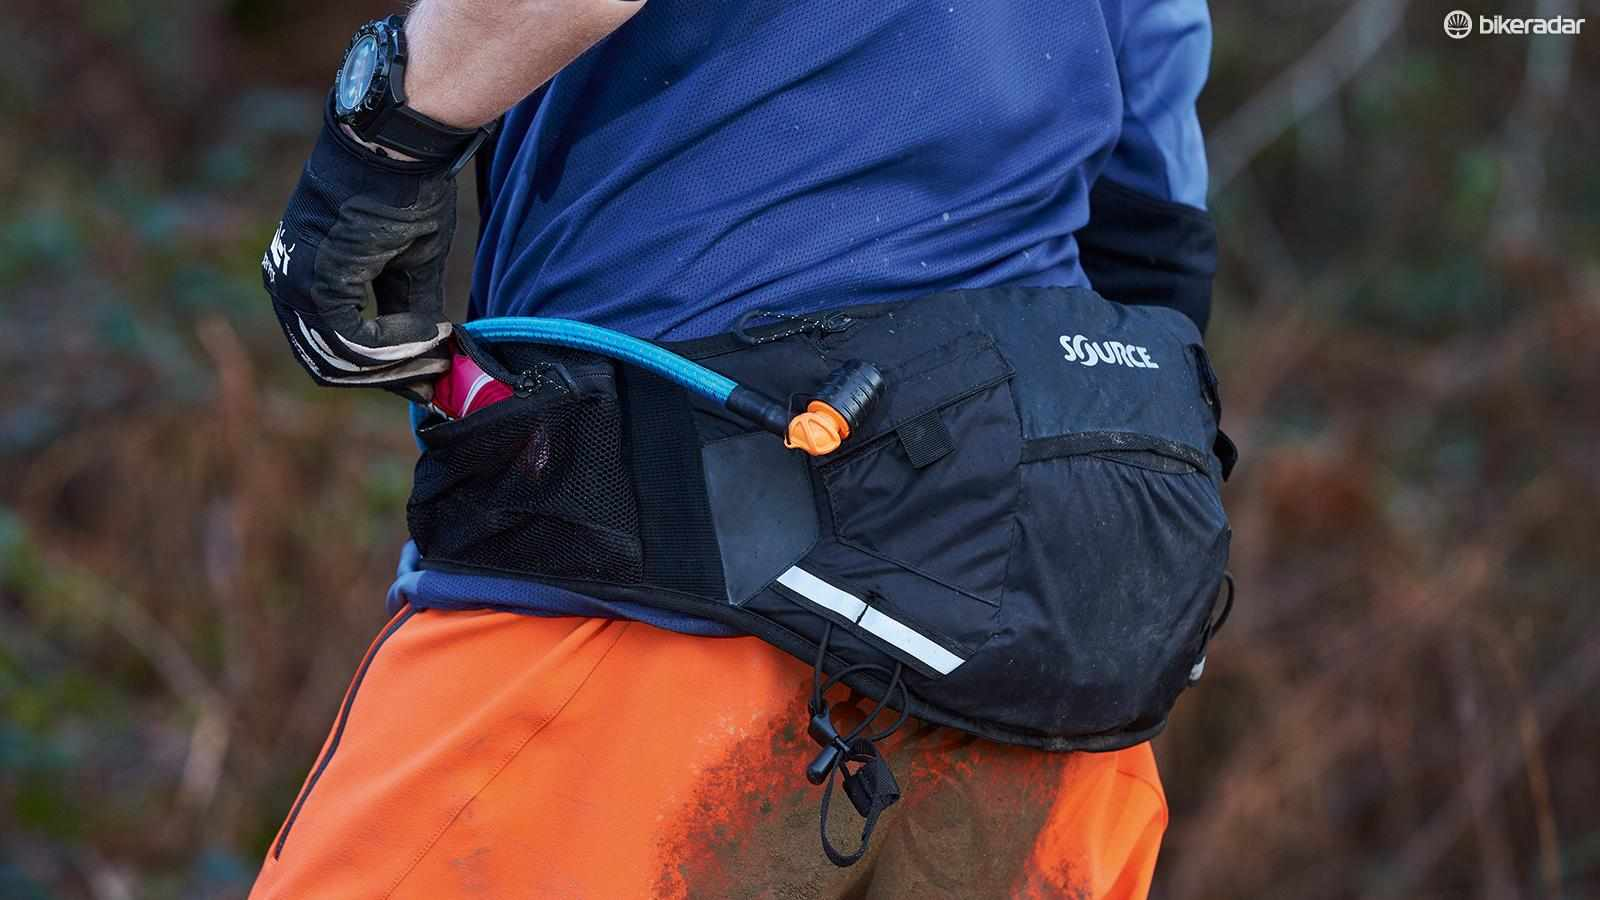 The Hipster hydration pack from Source